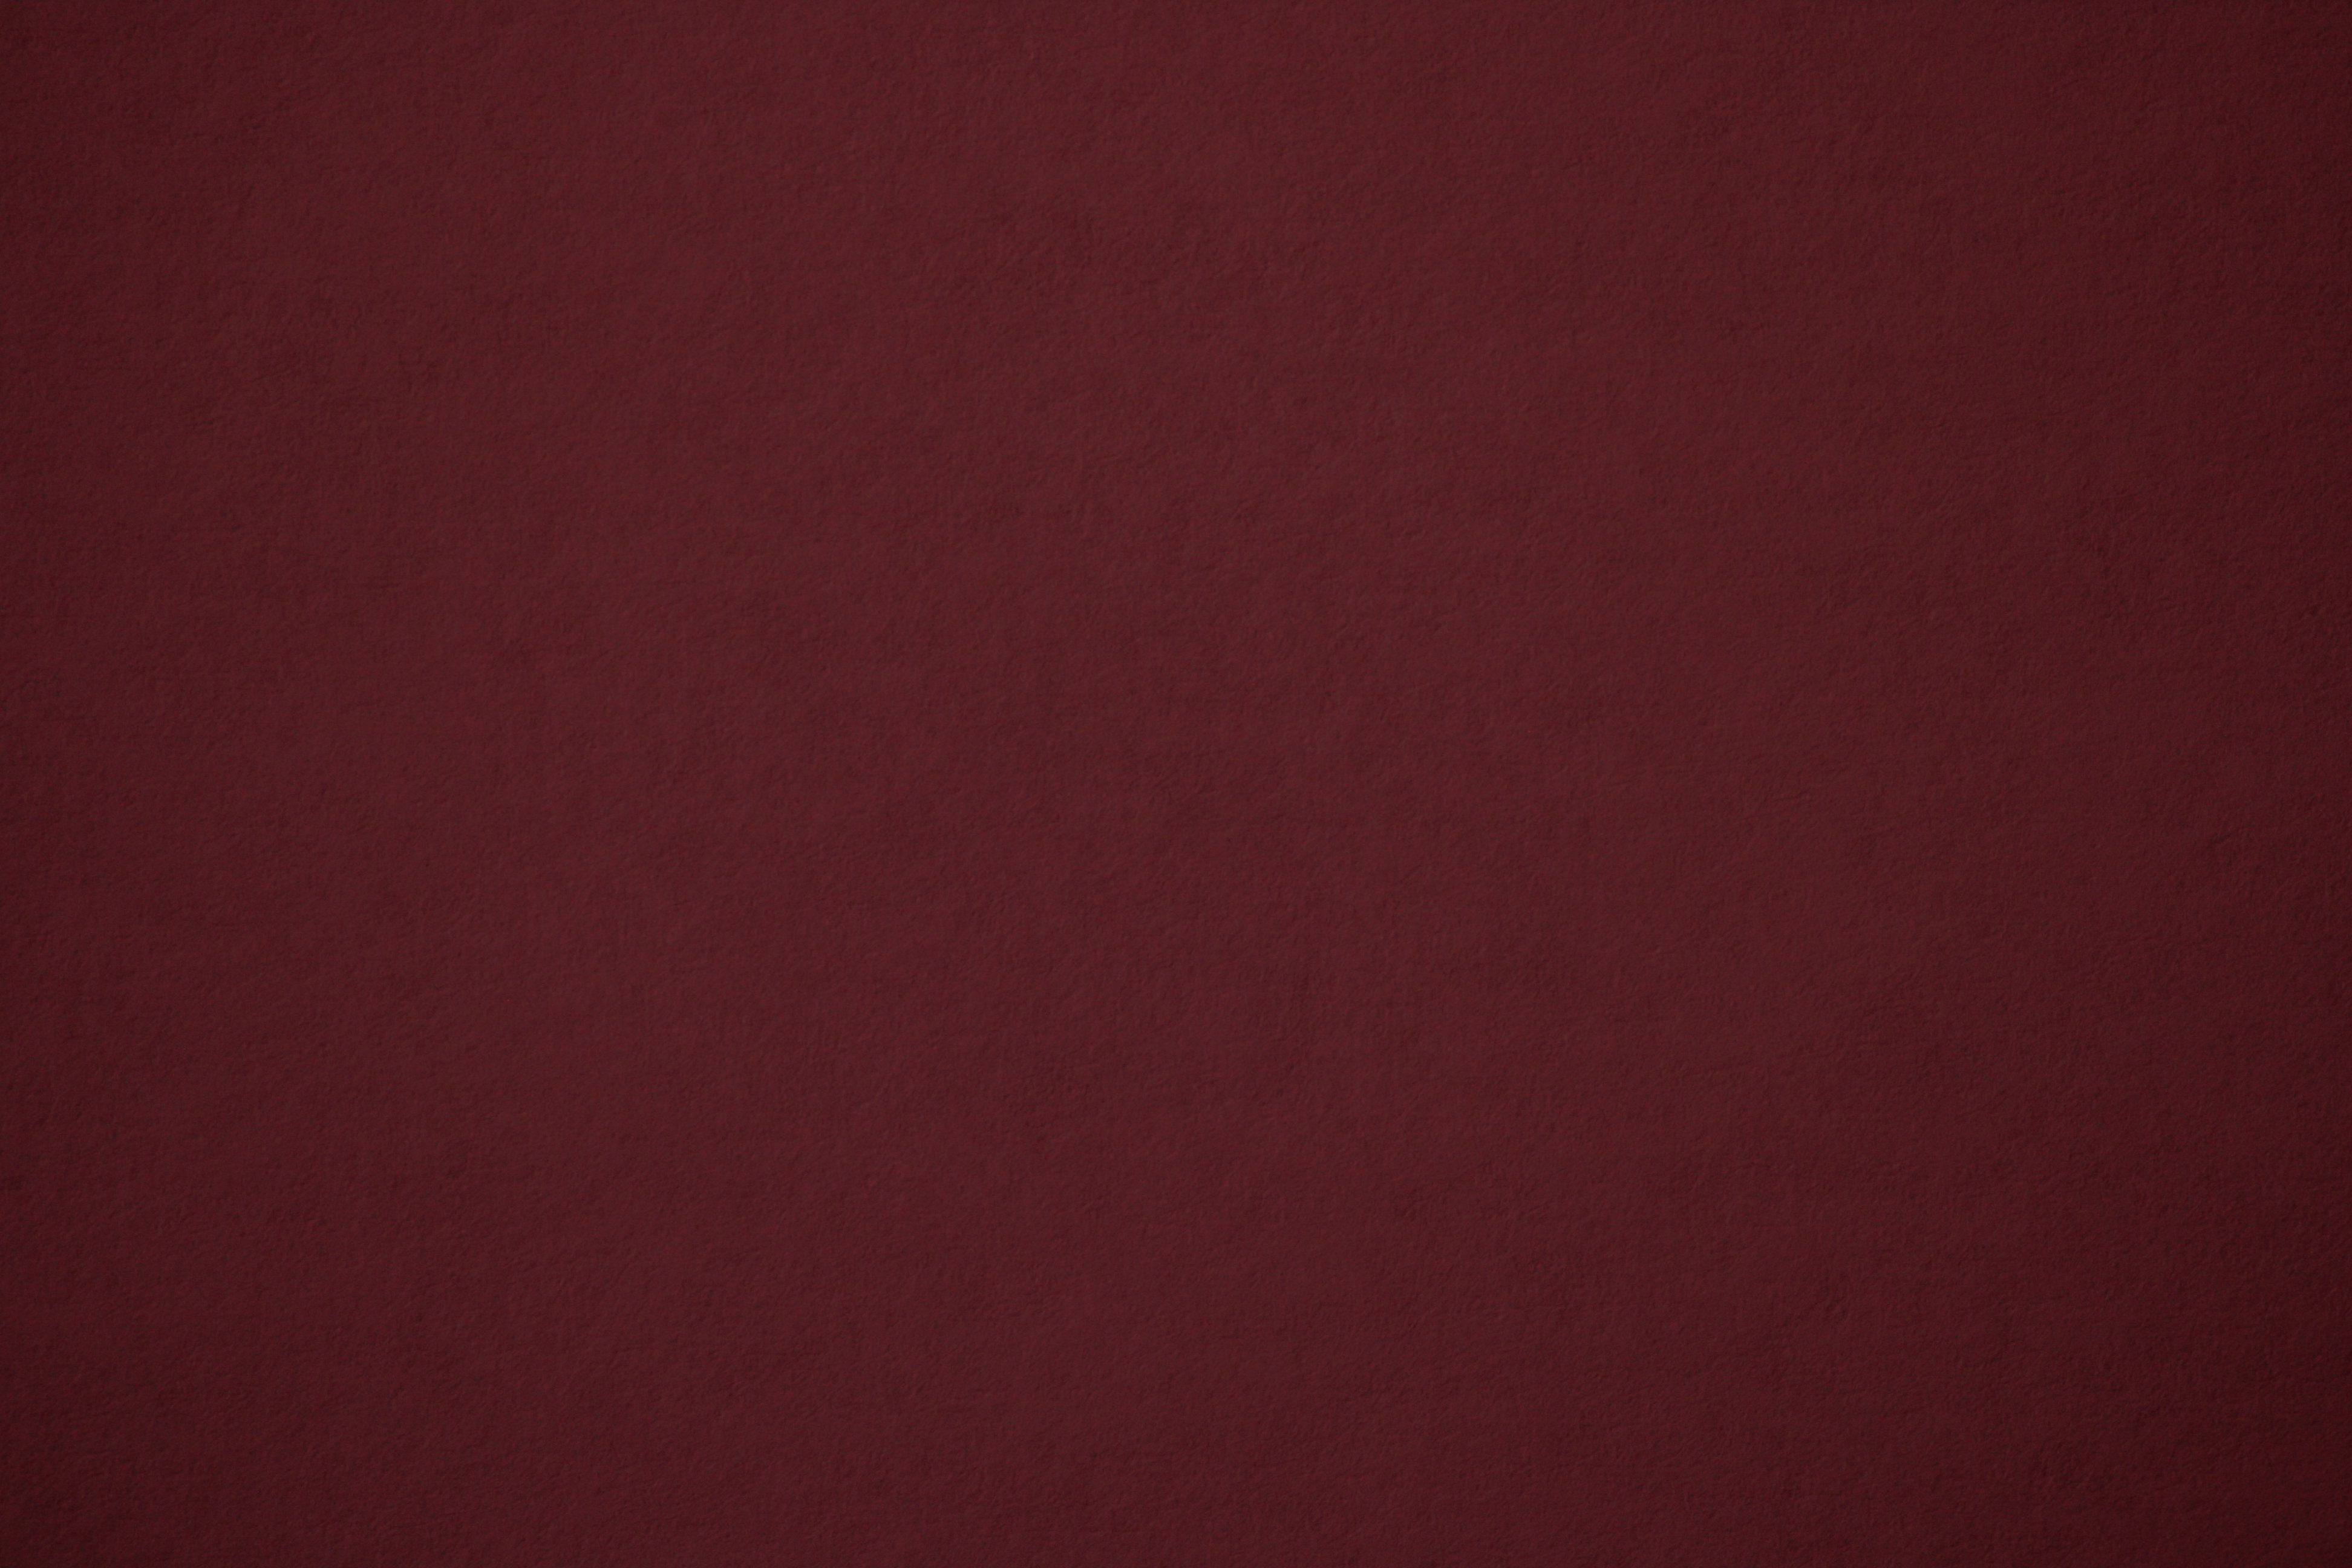 Maroon paper texture picture free photograph photos for Burgundy wallpaper